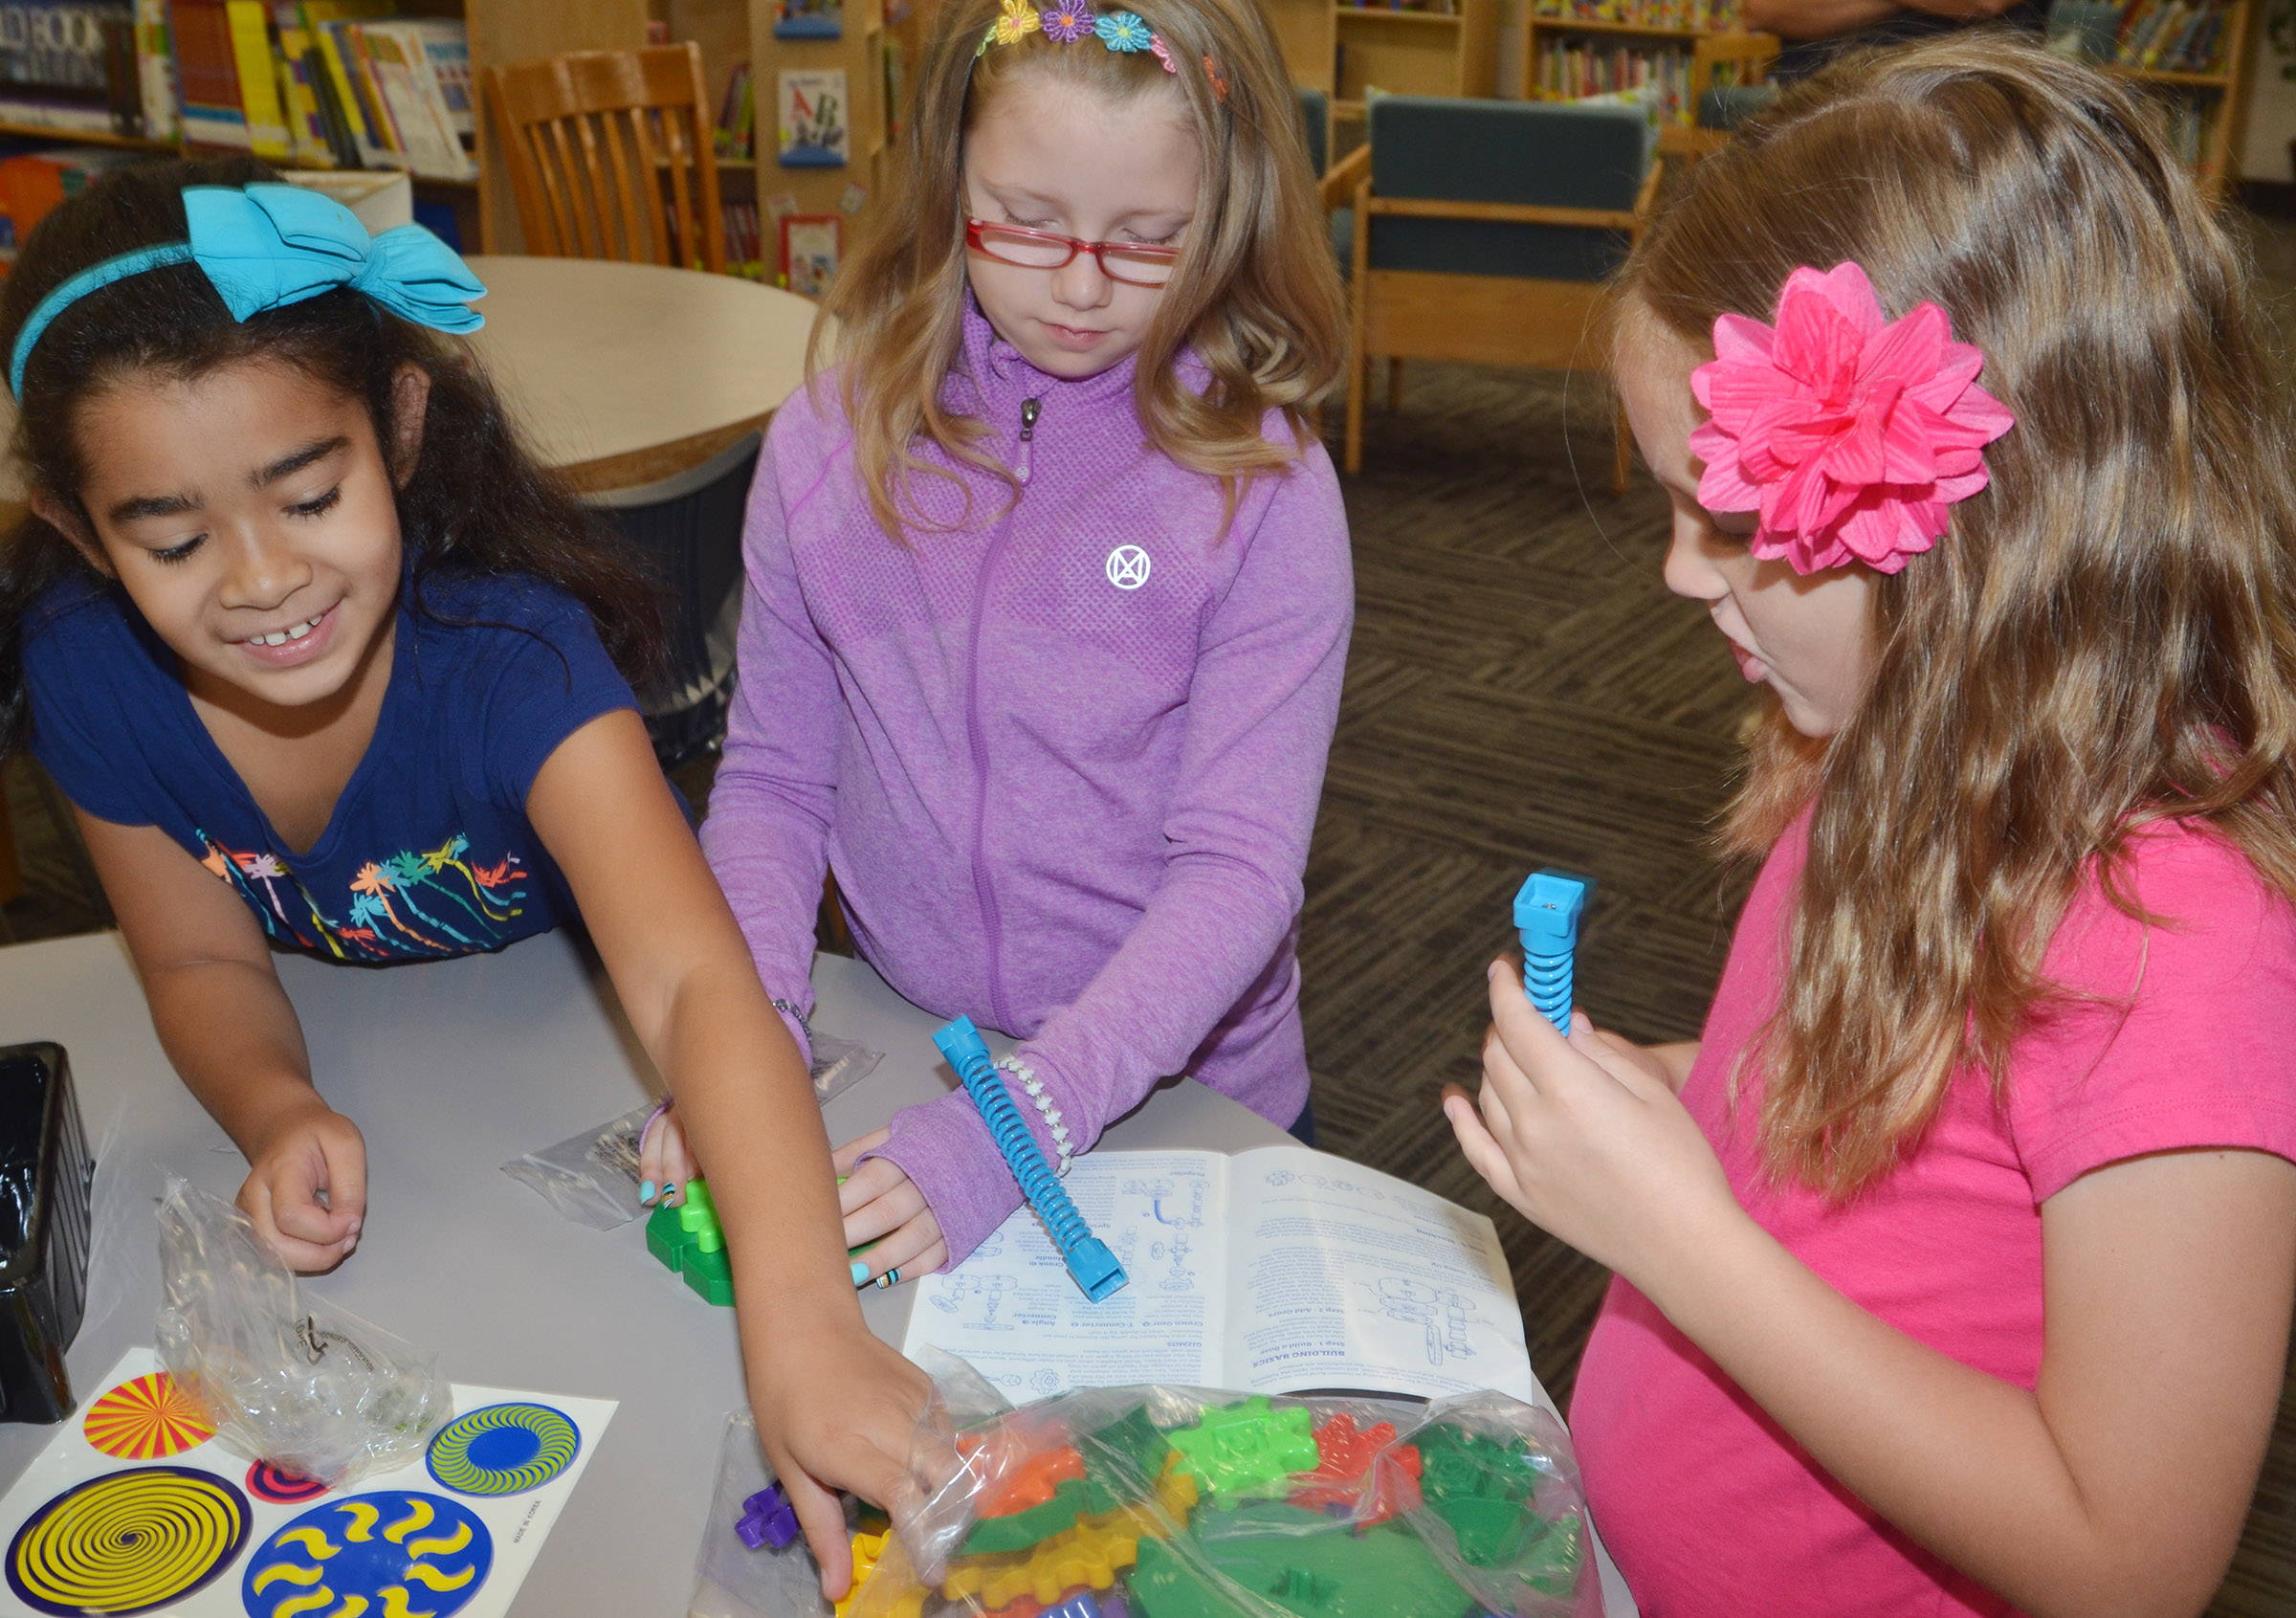 CES third-grader Sophia Santos, at left, and fourth-graders Gracie Pendleton and Madisyn Bradfield play with STEM toys donated by Amazon.